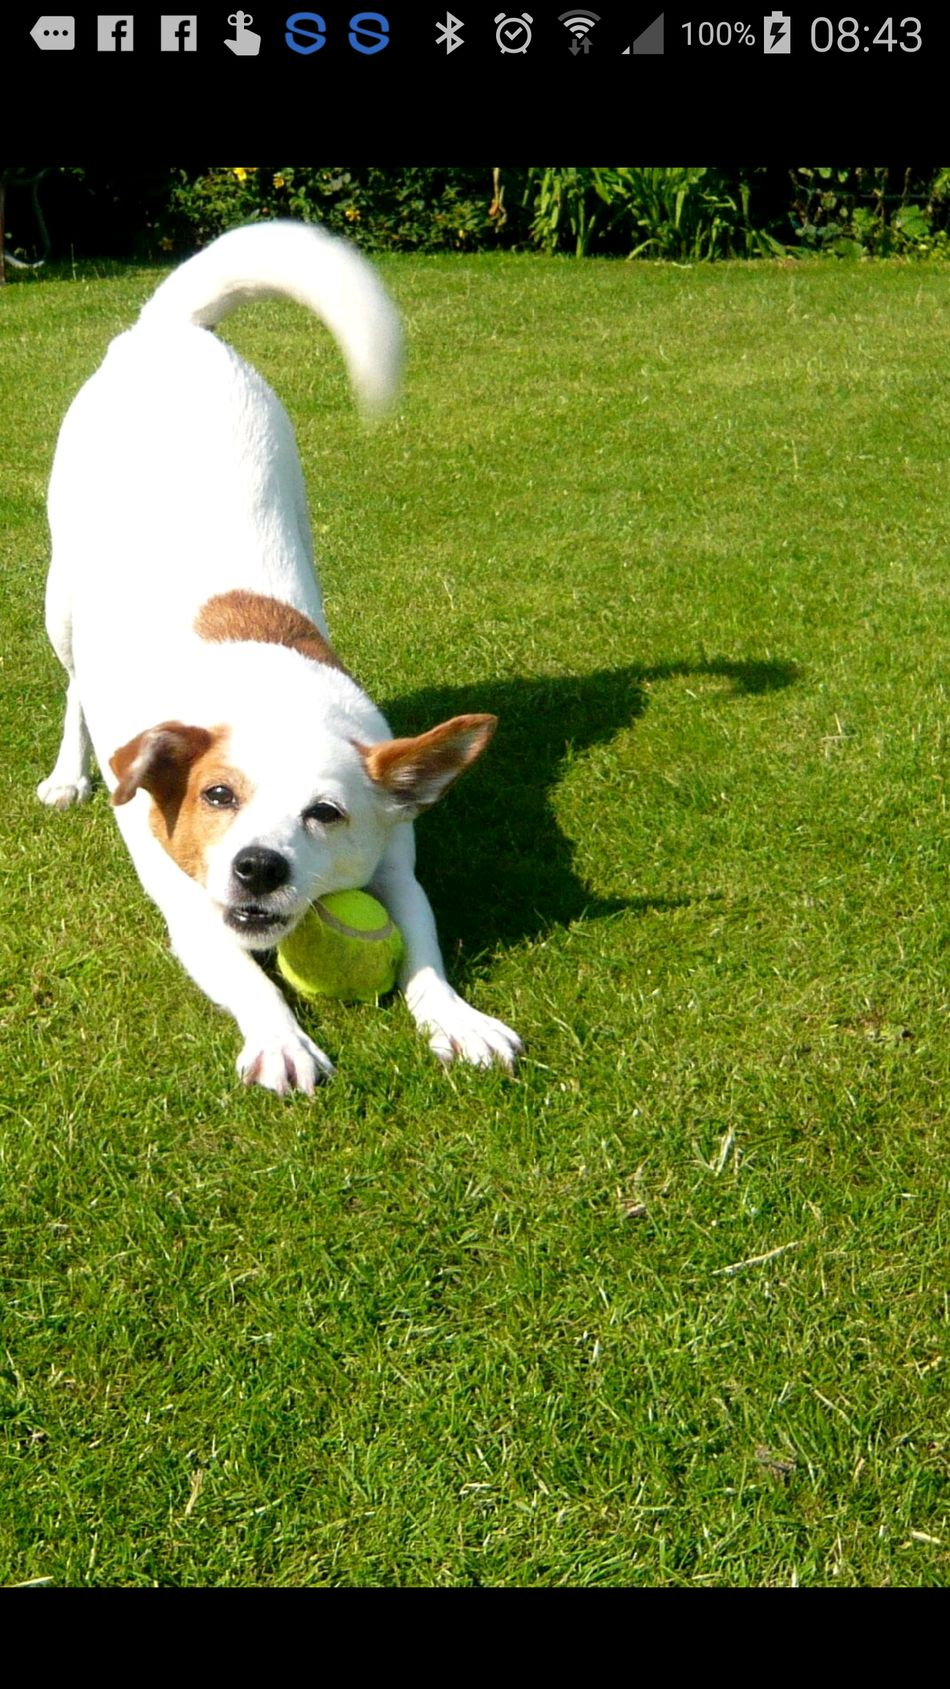 Dog And Ball.